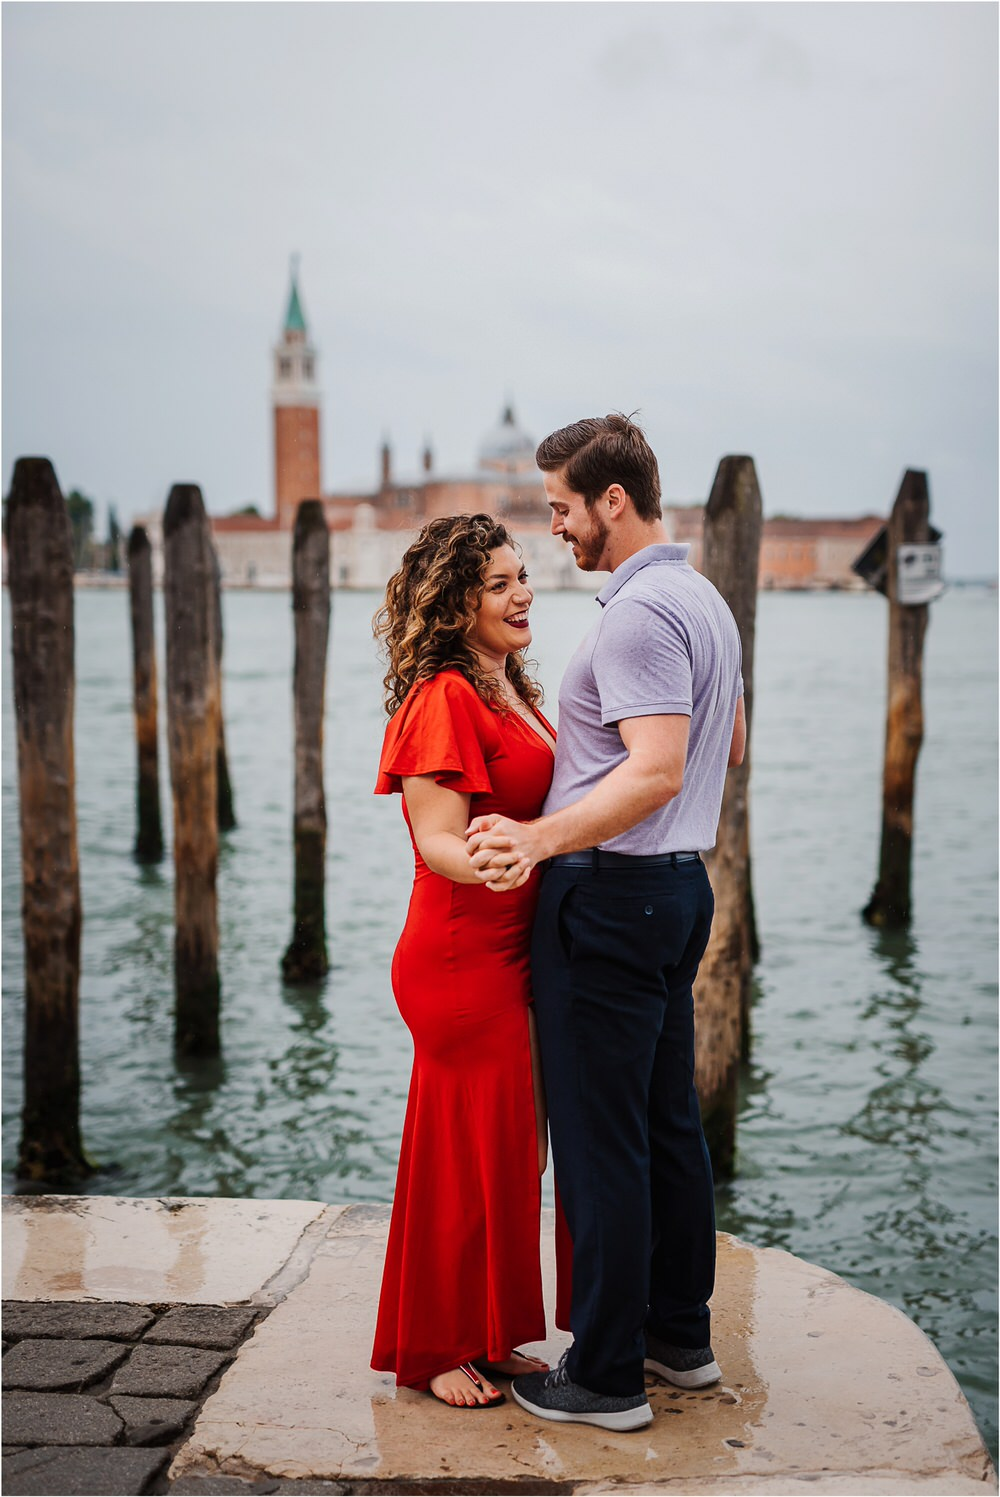 venezia venice wedding photographer photography real honest moody lookslikefilm italy italia matrimonio amore photography fotograf 0028.jpg